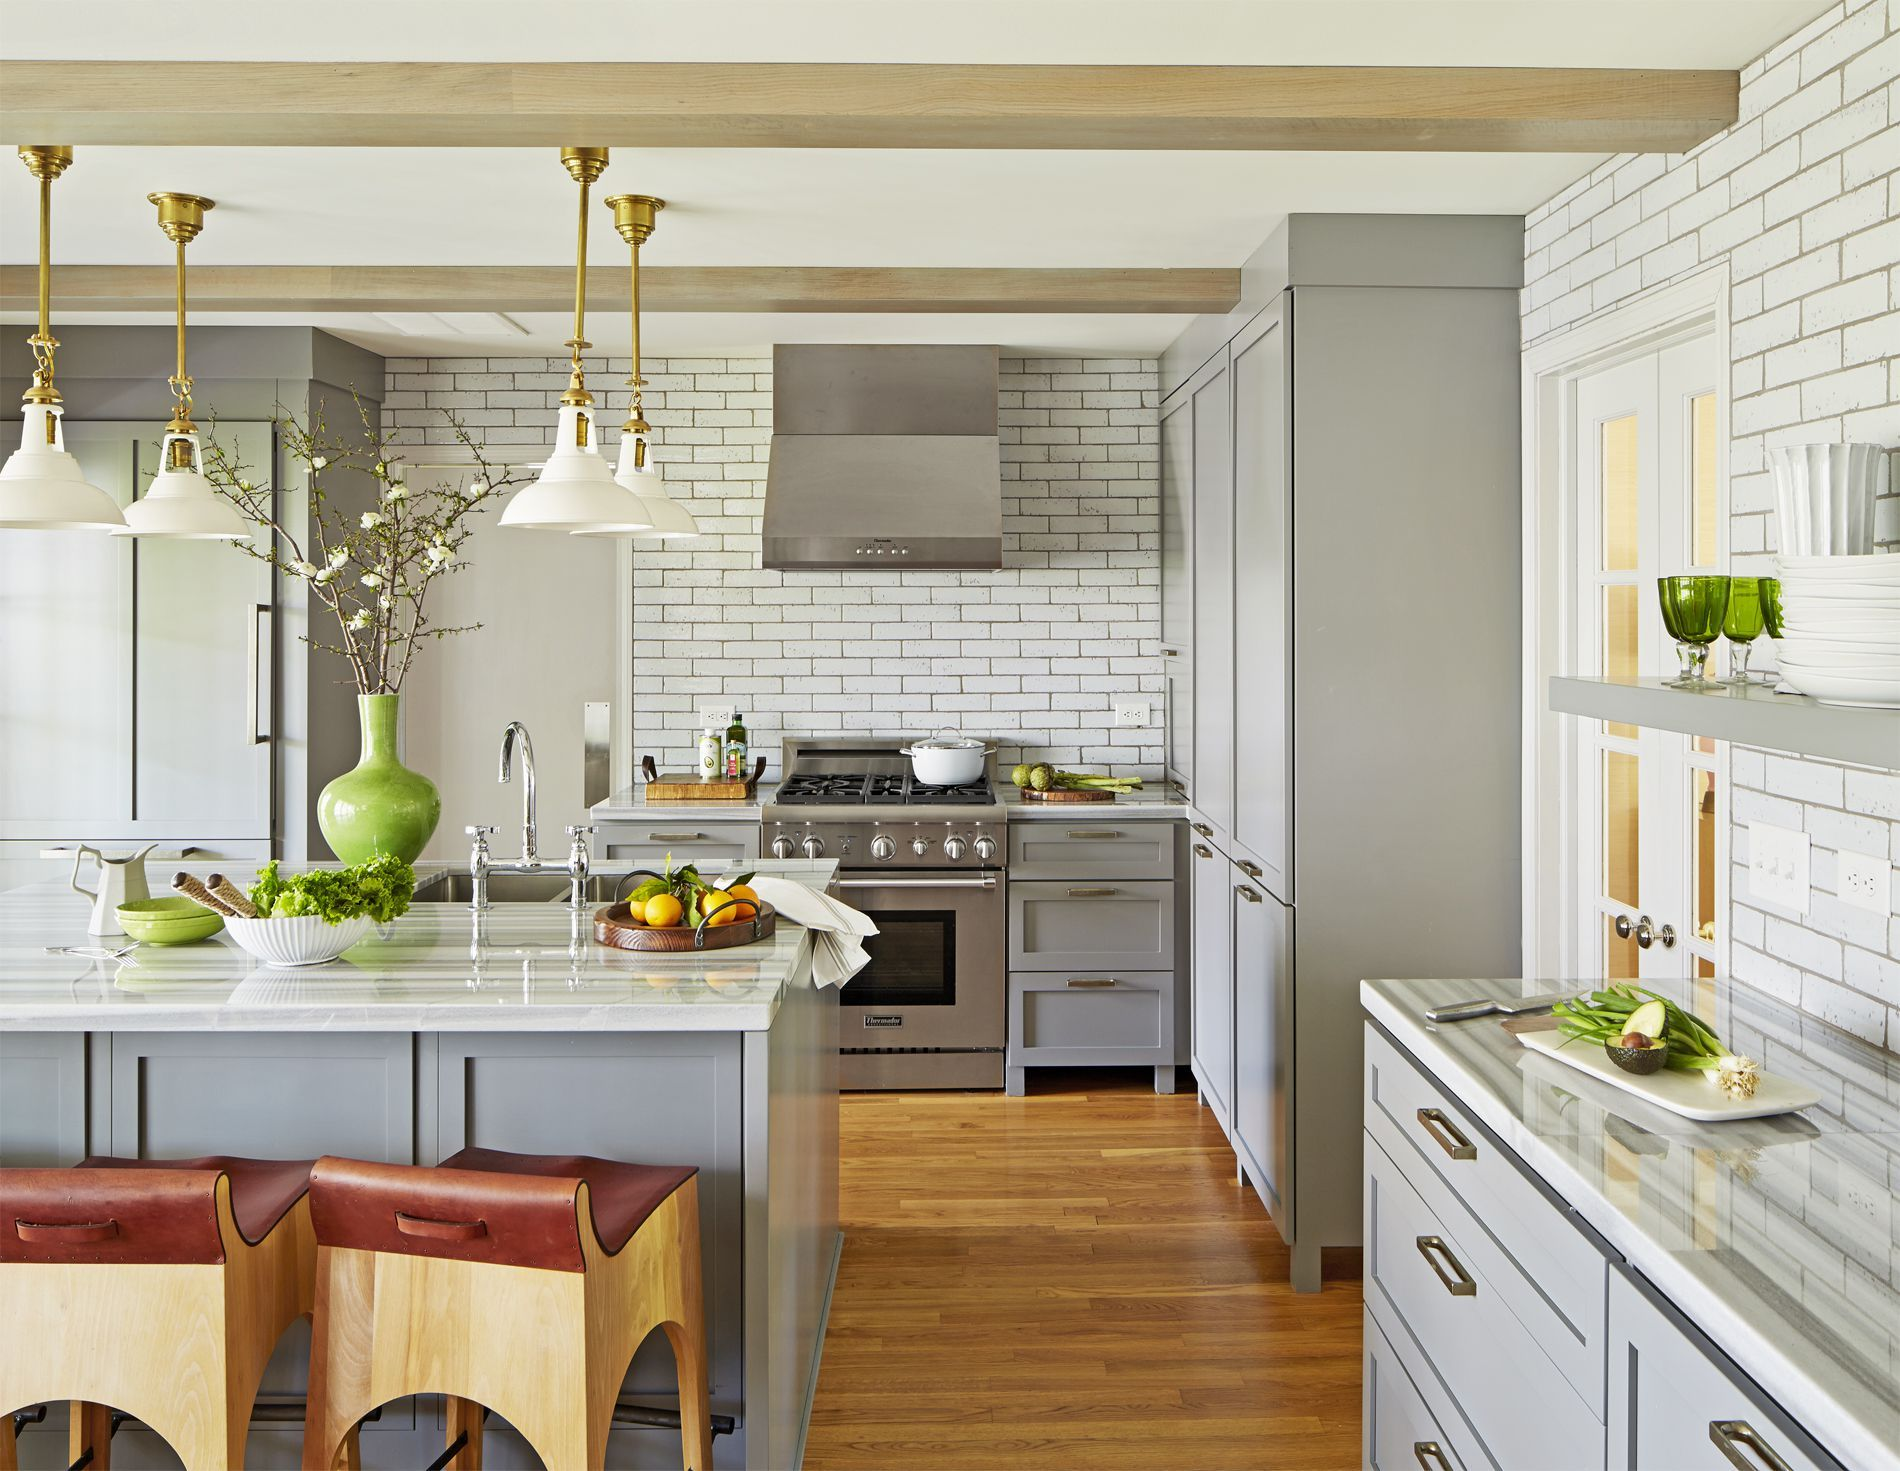 15 gorgeous kitchen trends for 2019 new cabinet and color design ideas rh countryliving com kitchen ideas 2019 budget new kitchen ideas 2019